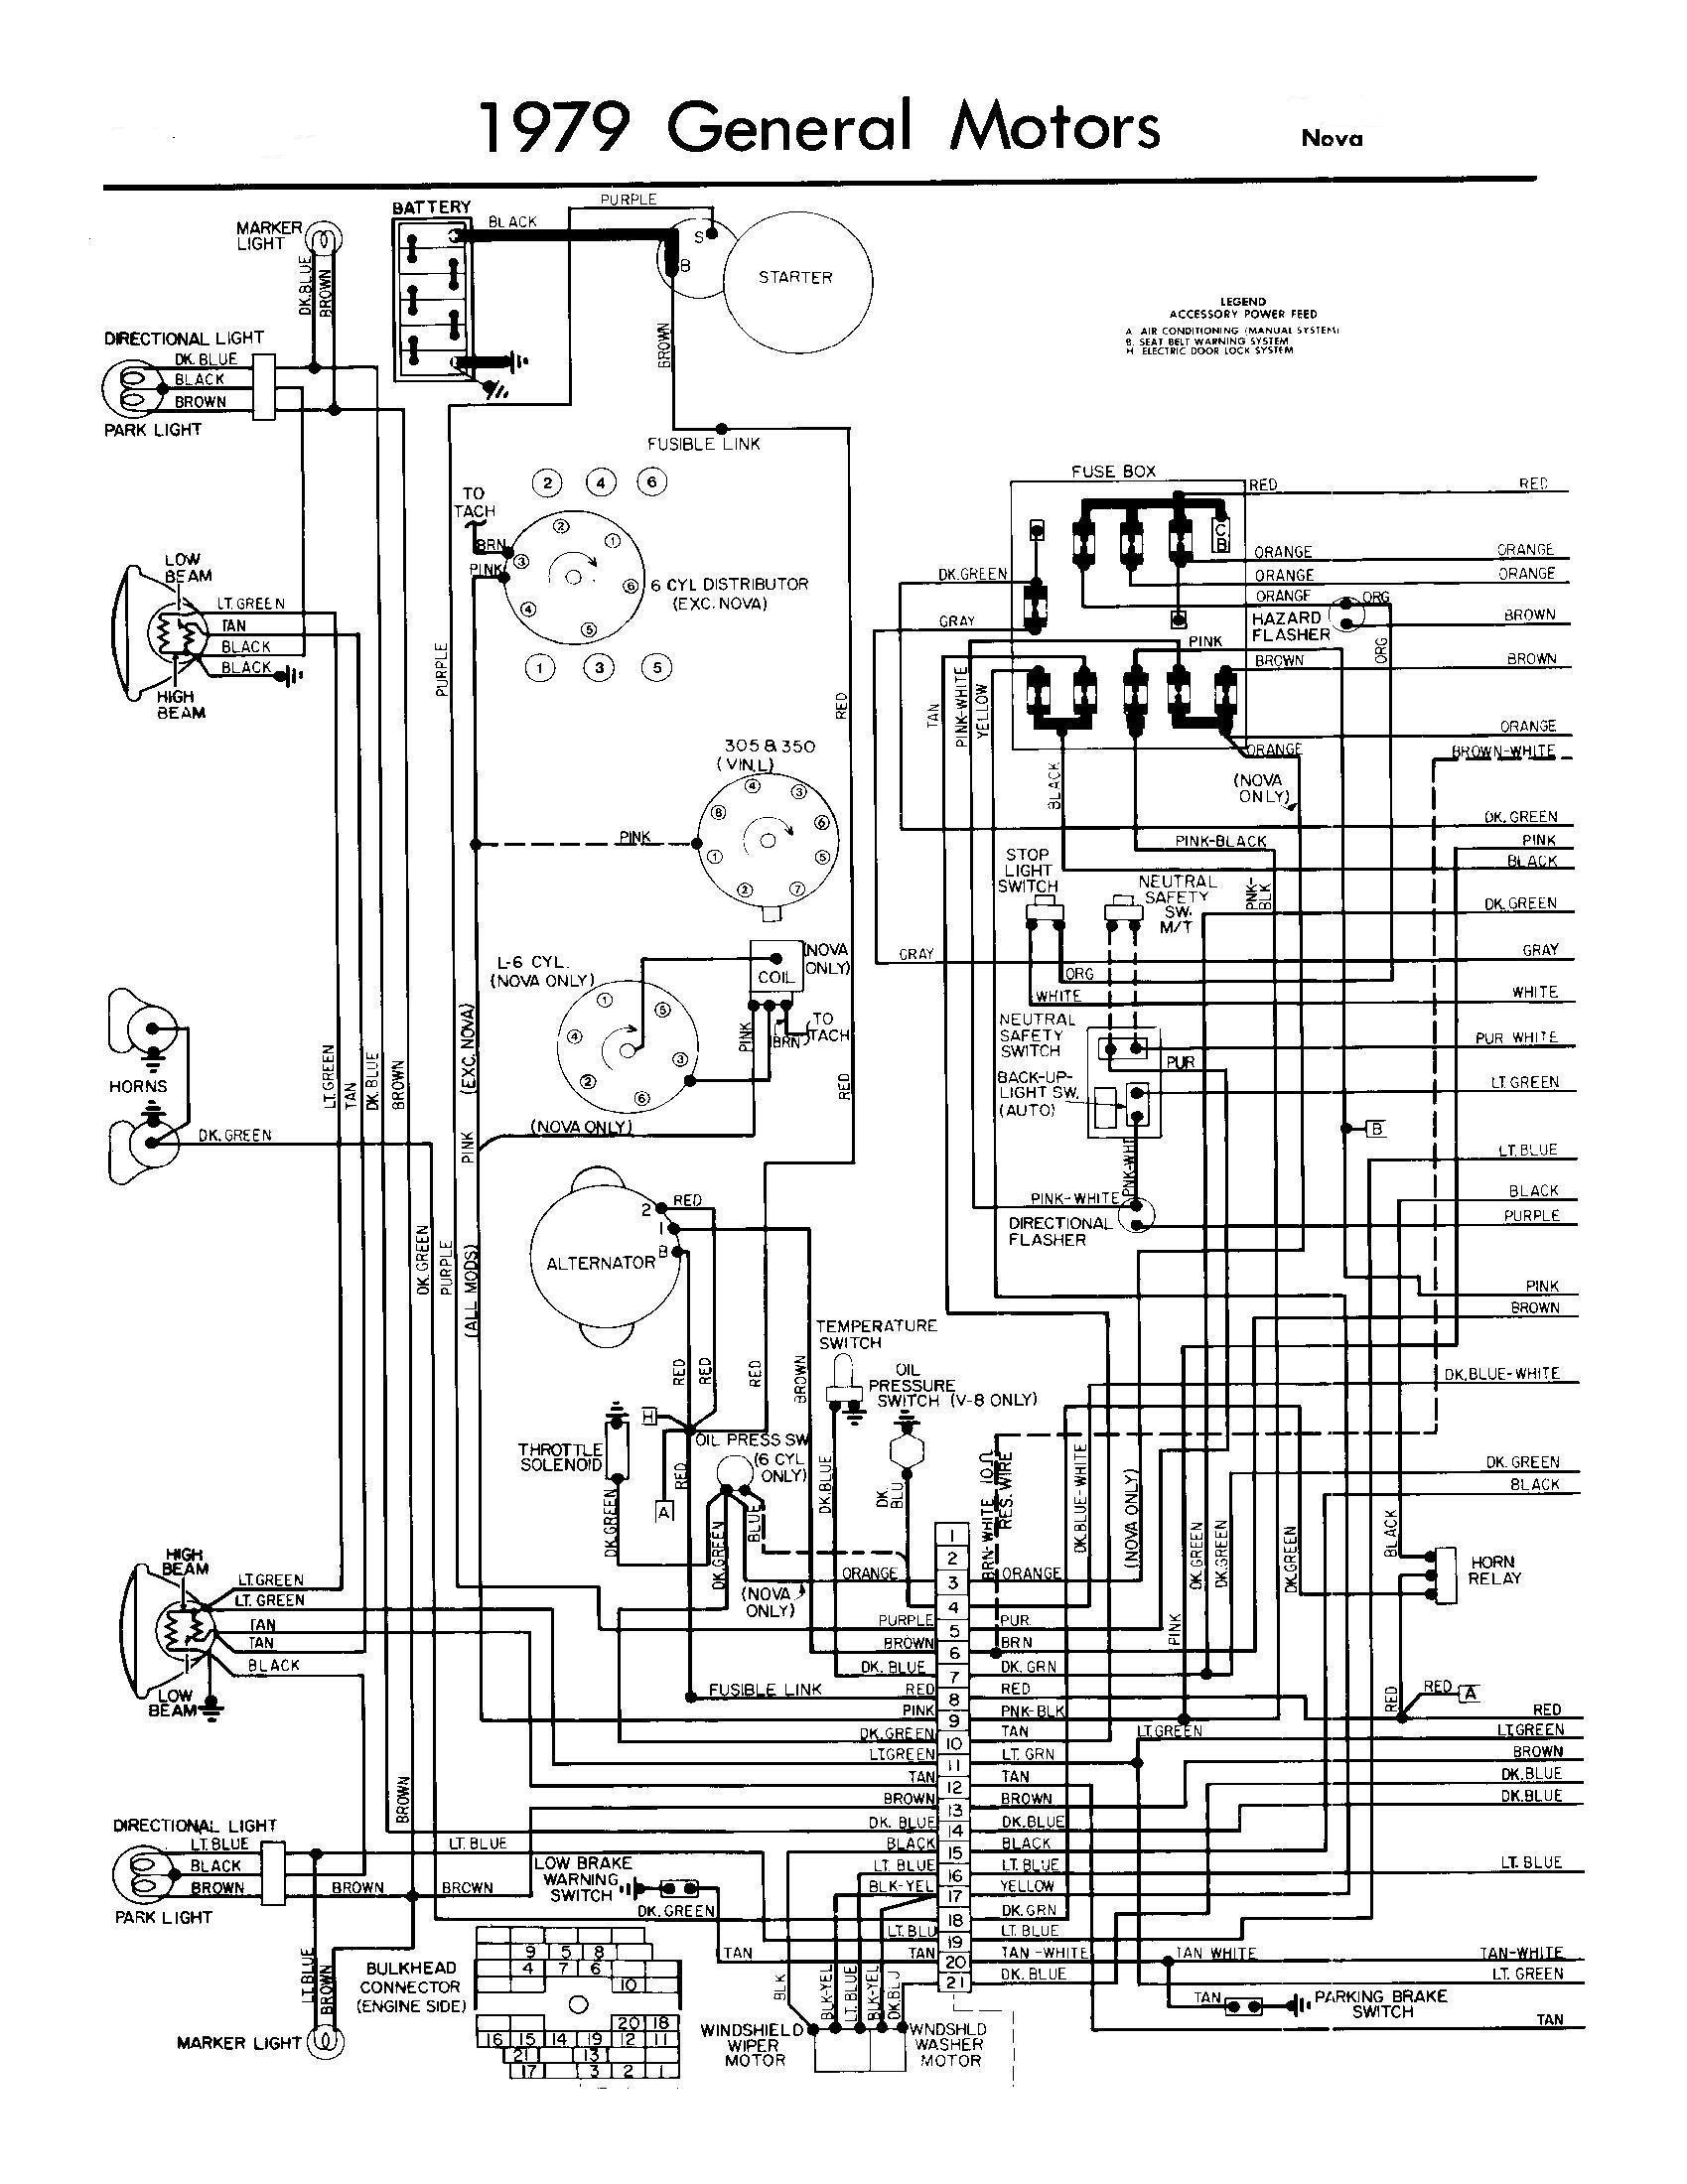 [DIAGRAM] R32 Gtr Rb26dett Wiring Harness Wiring Diagram